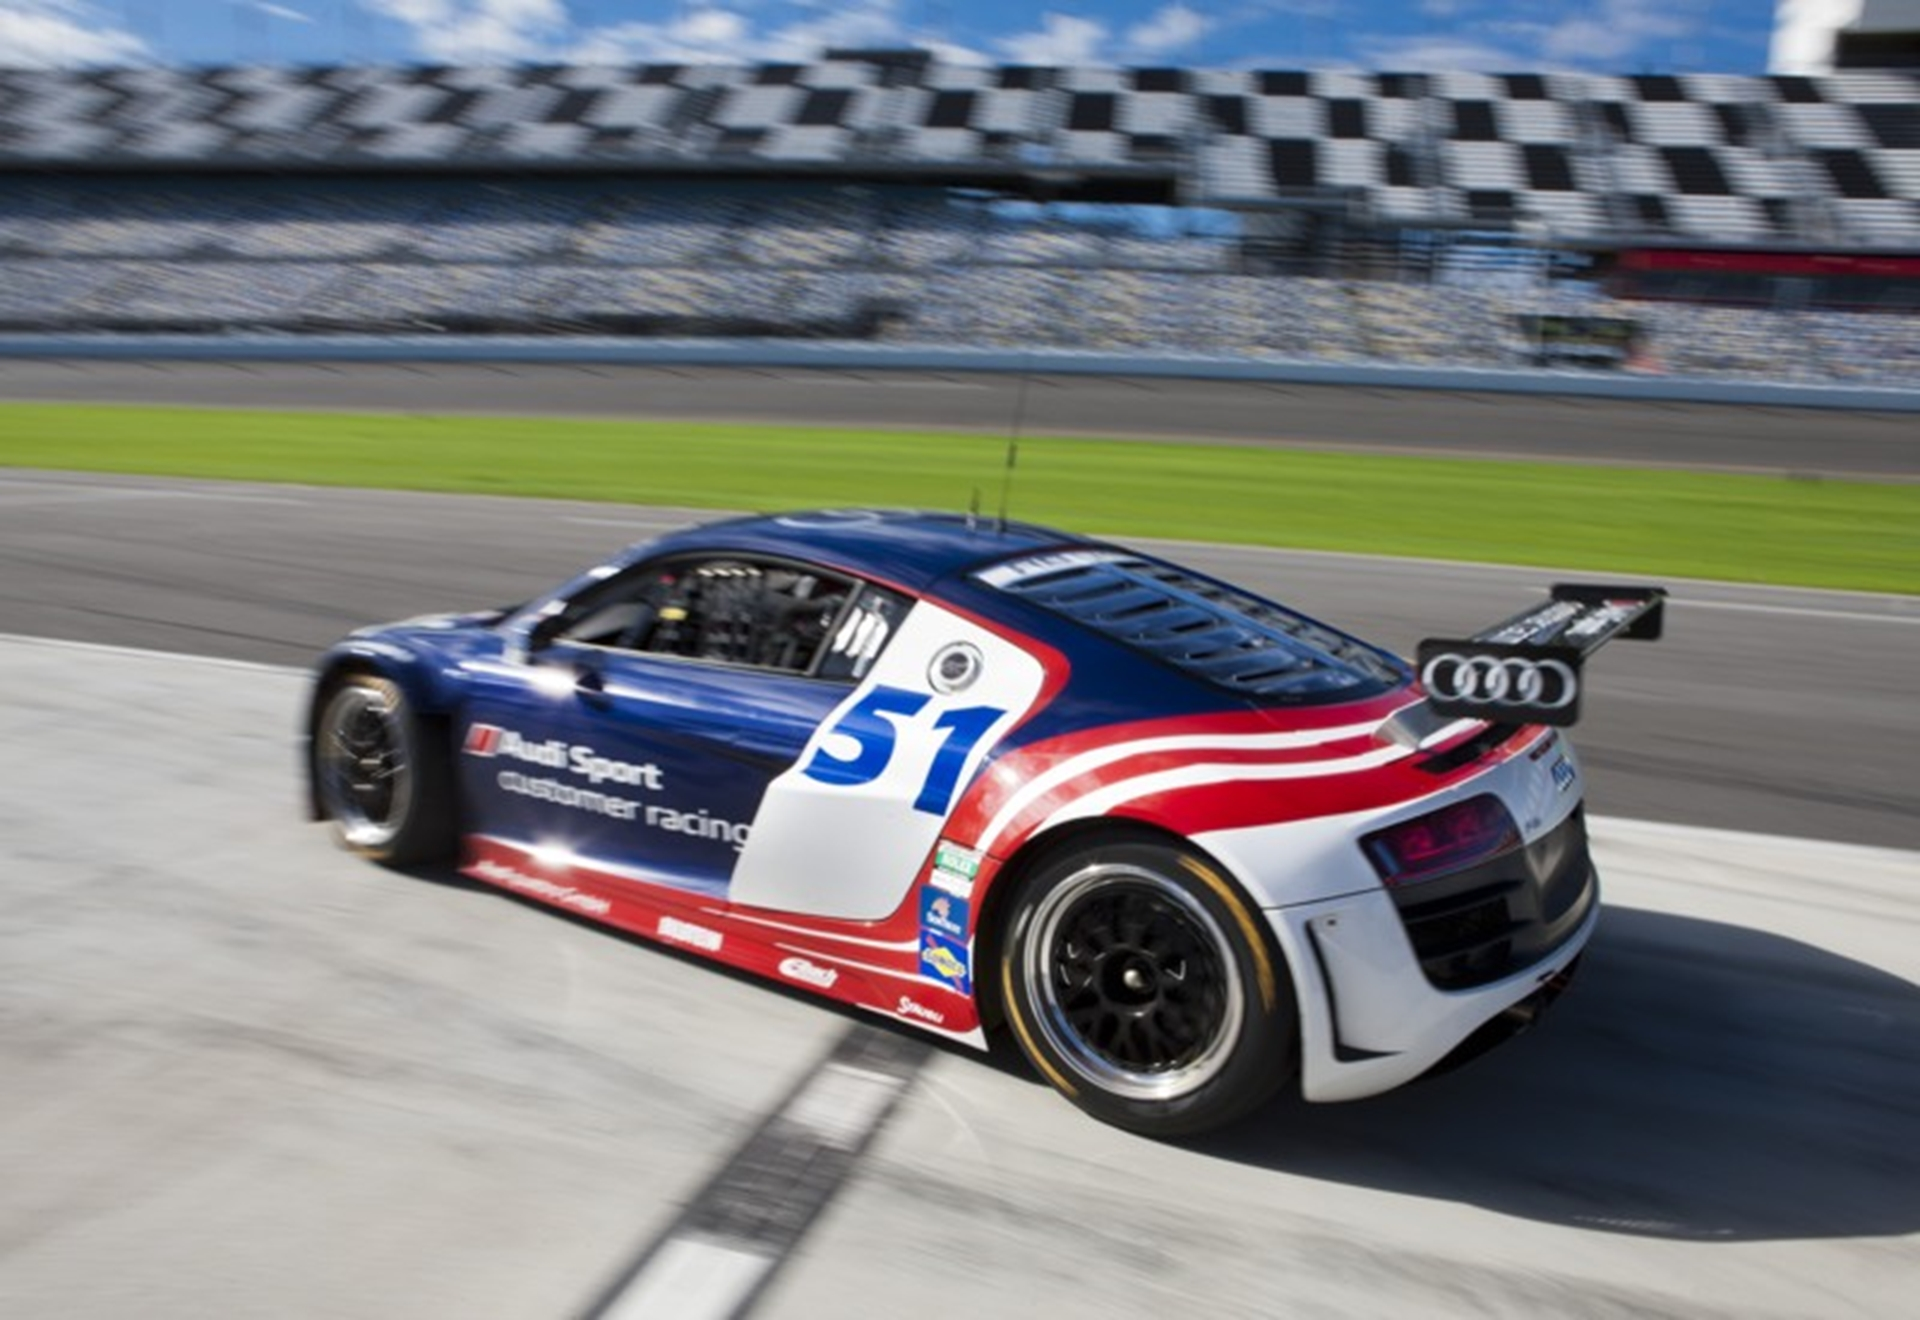 Successful test of the Audi R8 GRAND-AM